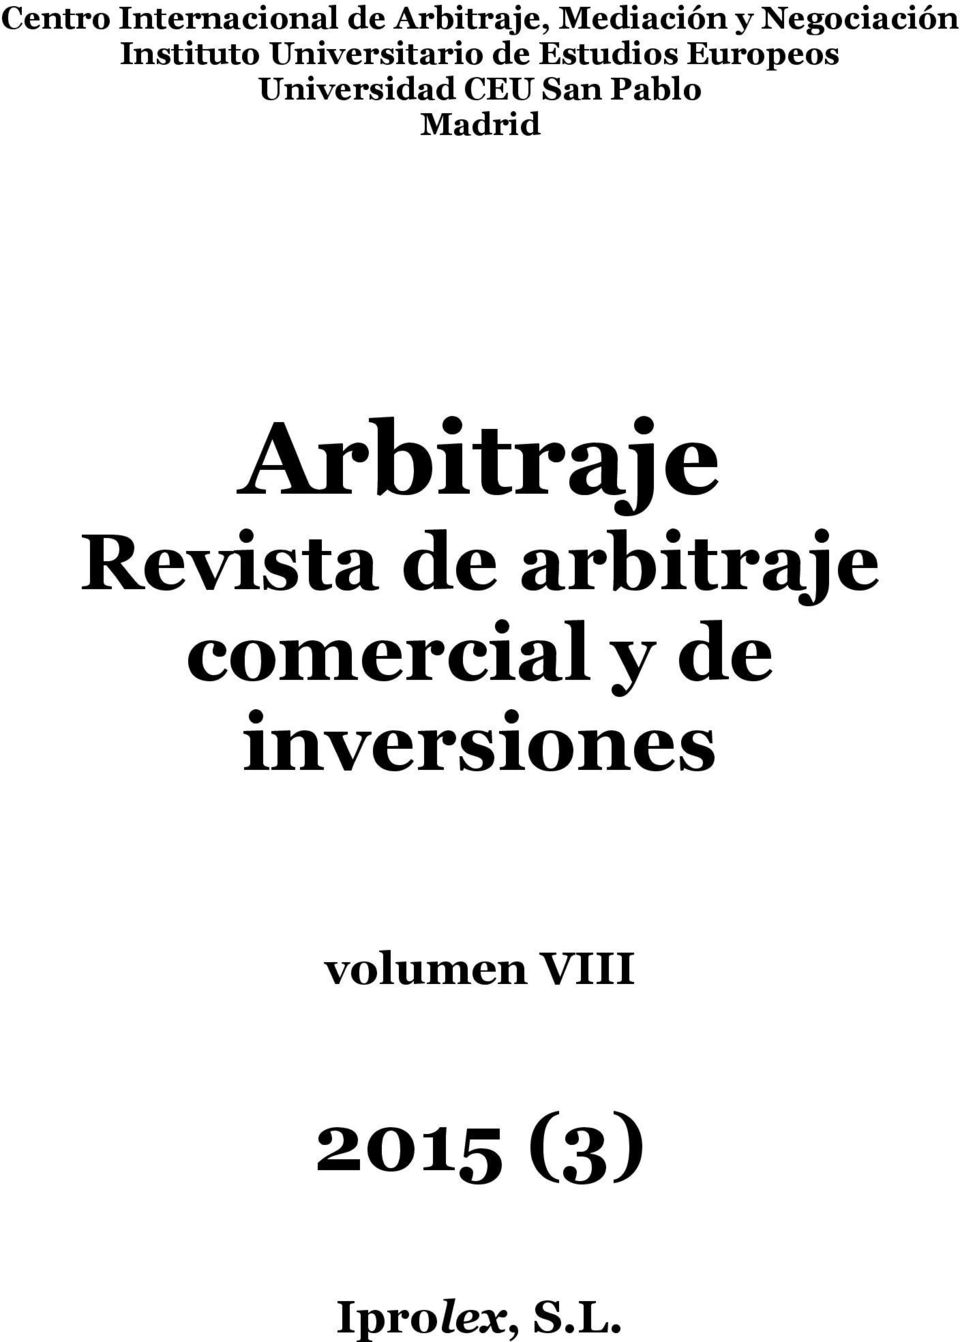 Universidad CEU San Pablo Madrid Arbitraje Revista de